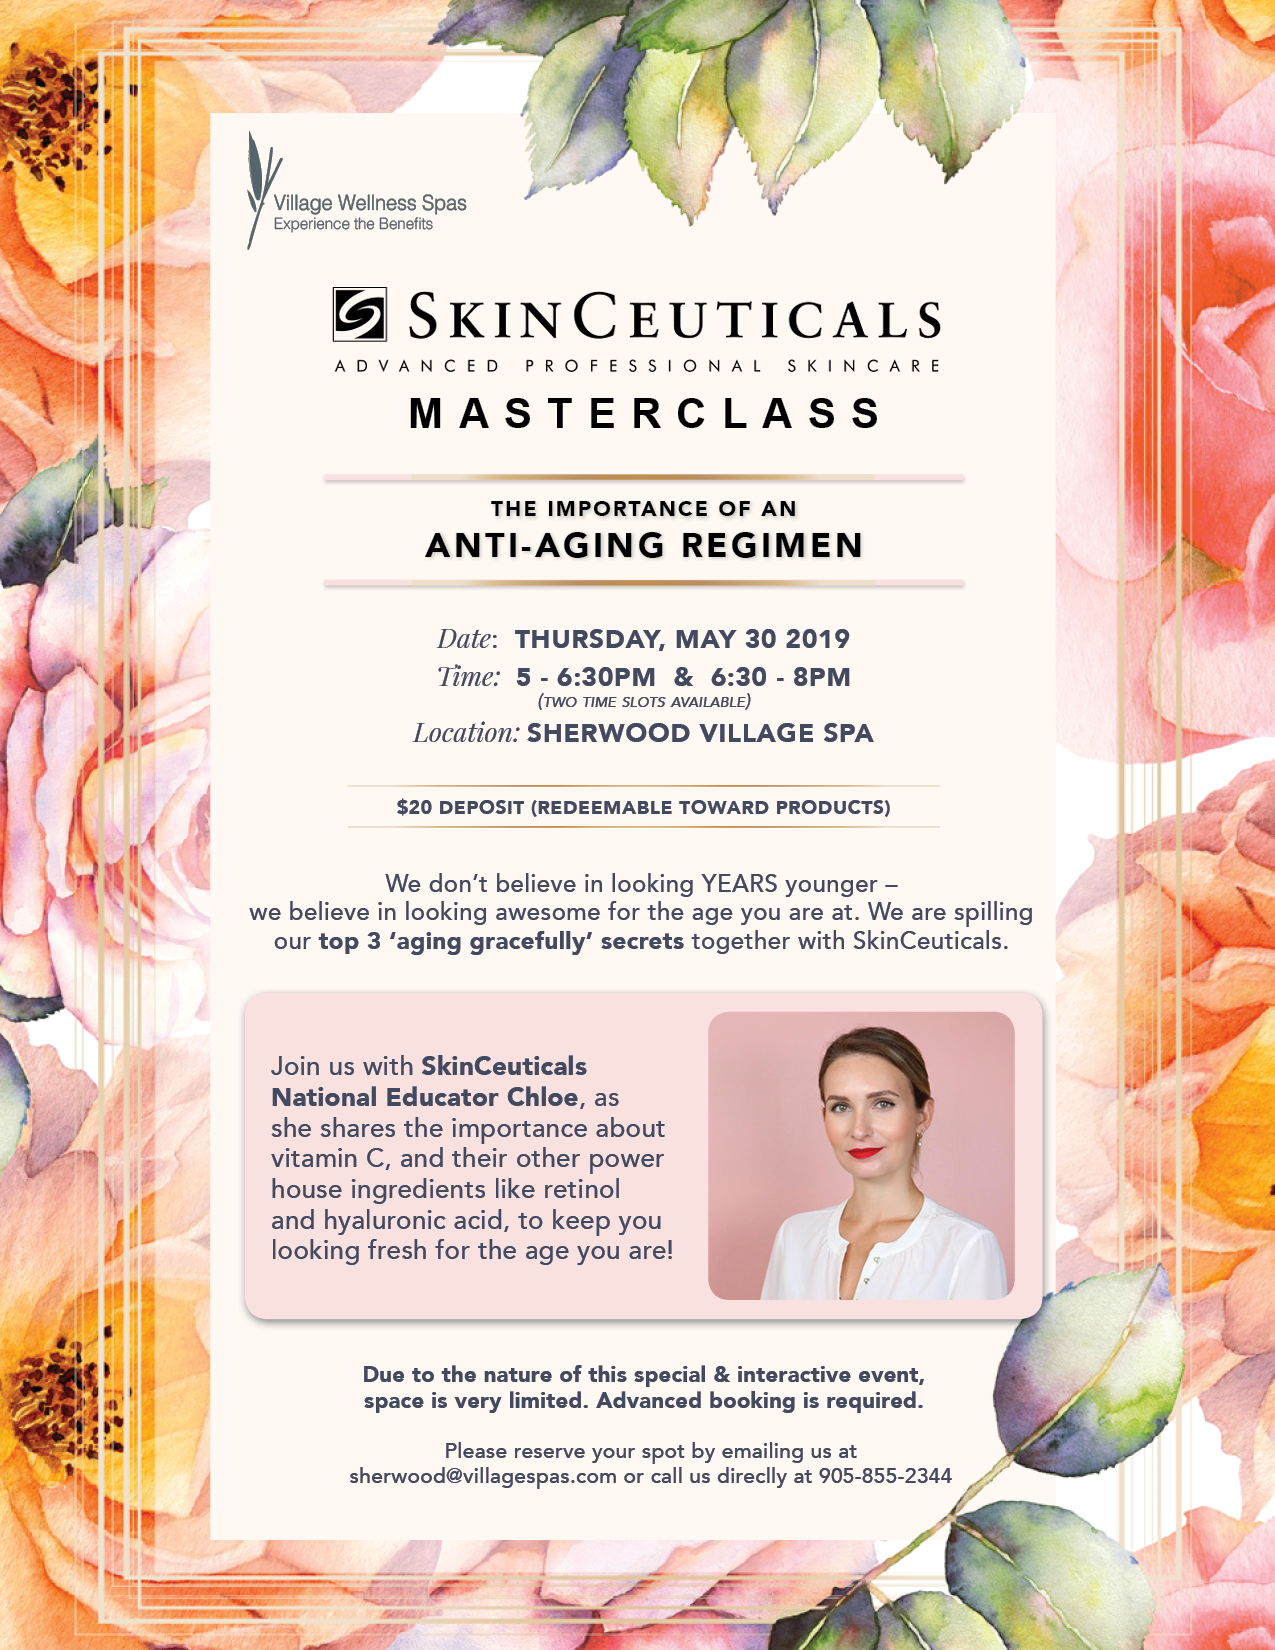 SVS_Anniversary_Skinceuticals_Masterclass_Print_1.png